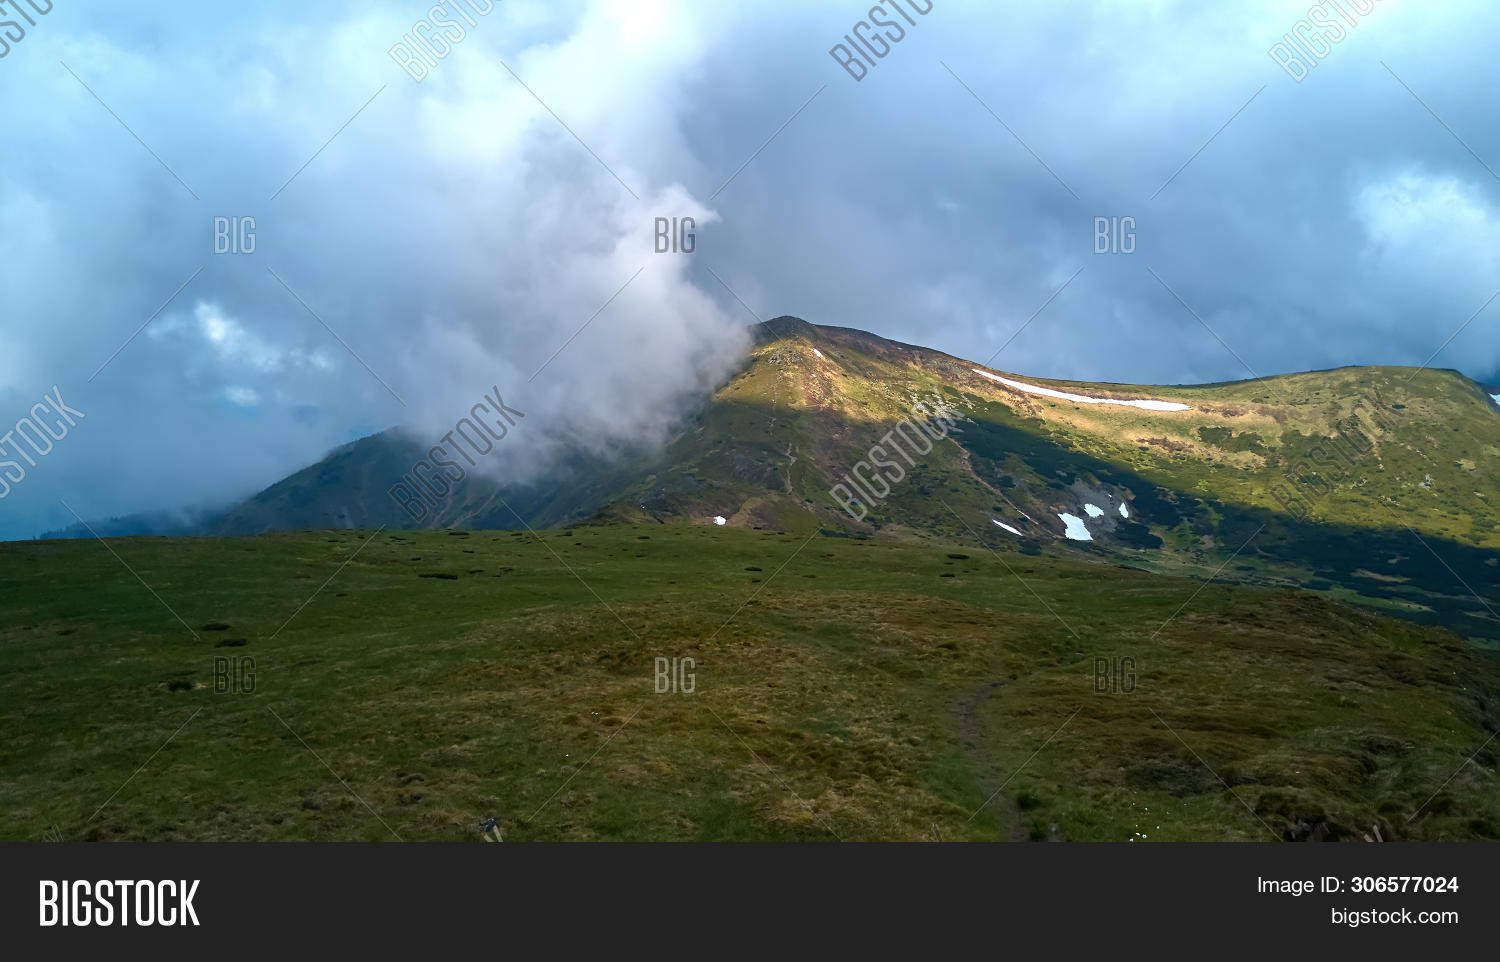 background,beautiful,blue,carpathian,chornohora,cloud,crest,environment,forest,grass,green,hiking,hill,landscape,meadow,mountain,nature,outdoor,panorama,panoramic,path,peak,plant,range,ridge,rock,scenery,scenic,season,sky,slope,spruce,spur,stone,summer,top,tourism,travel,tree,ukraine,valley,view,weather